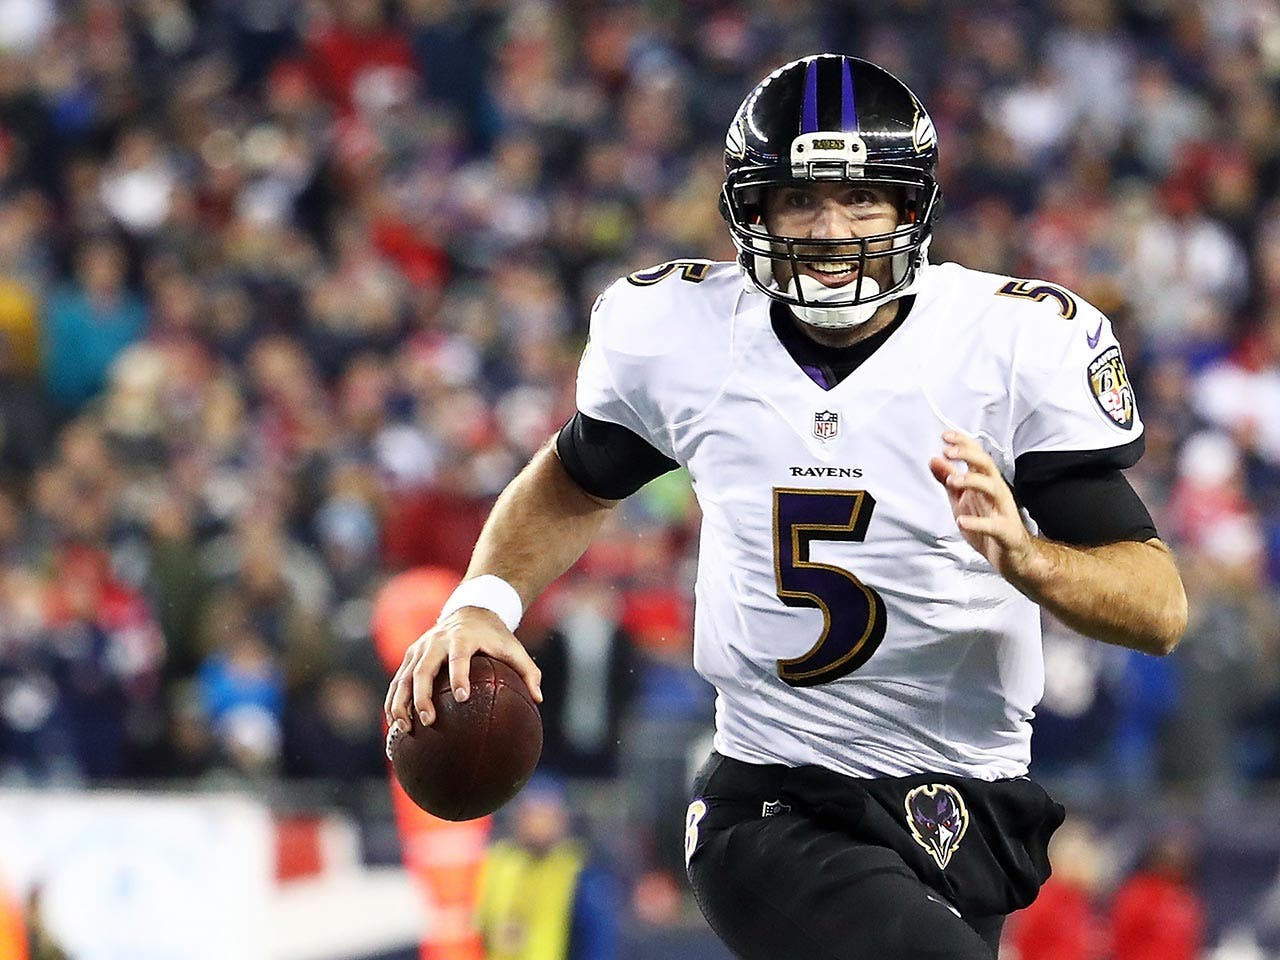 Joe Flacco | Adam Glanzman/Getty Images